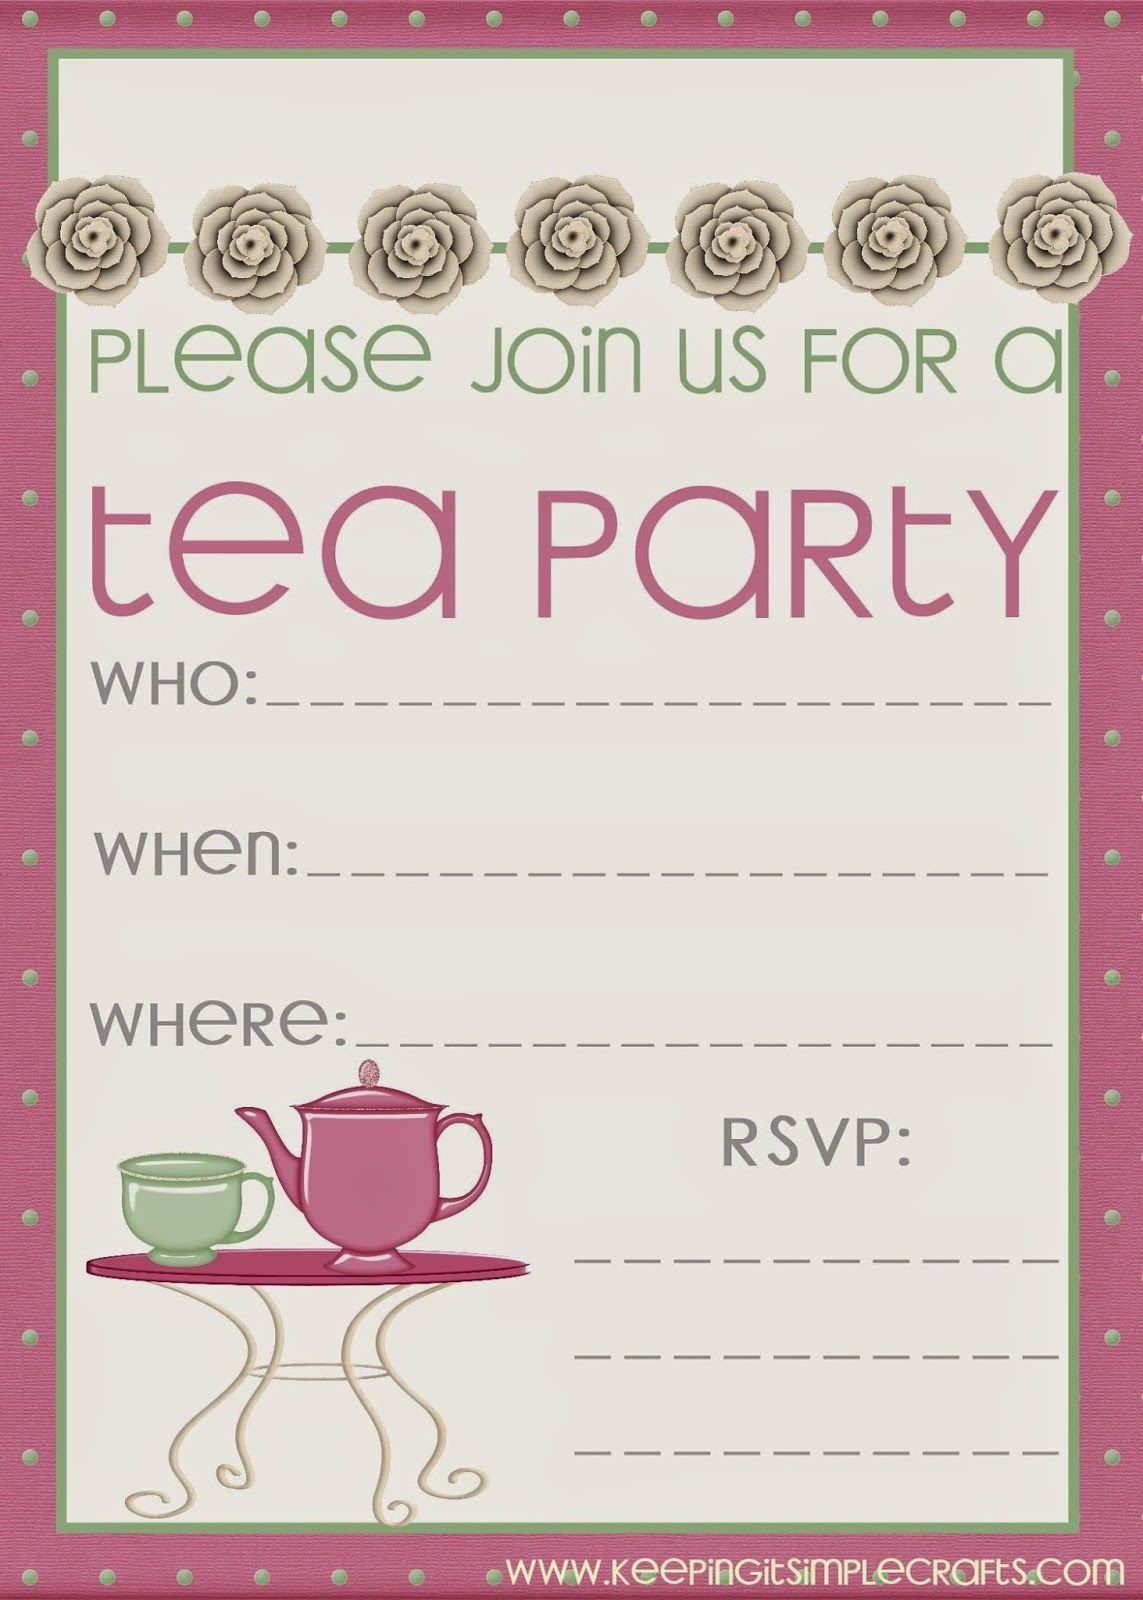 printable party invitations invitations for a princess printable princess birthday party invitations printable party kits keeping it simple little girl birthday party ideas tea party different